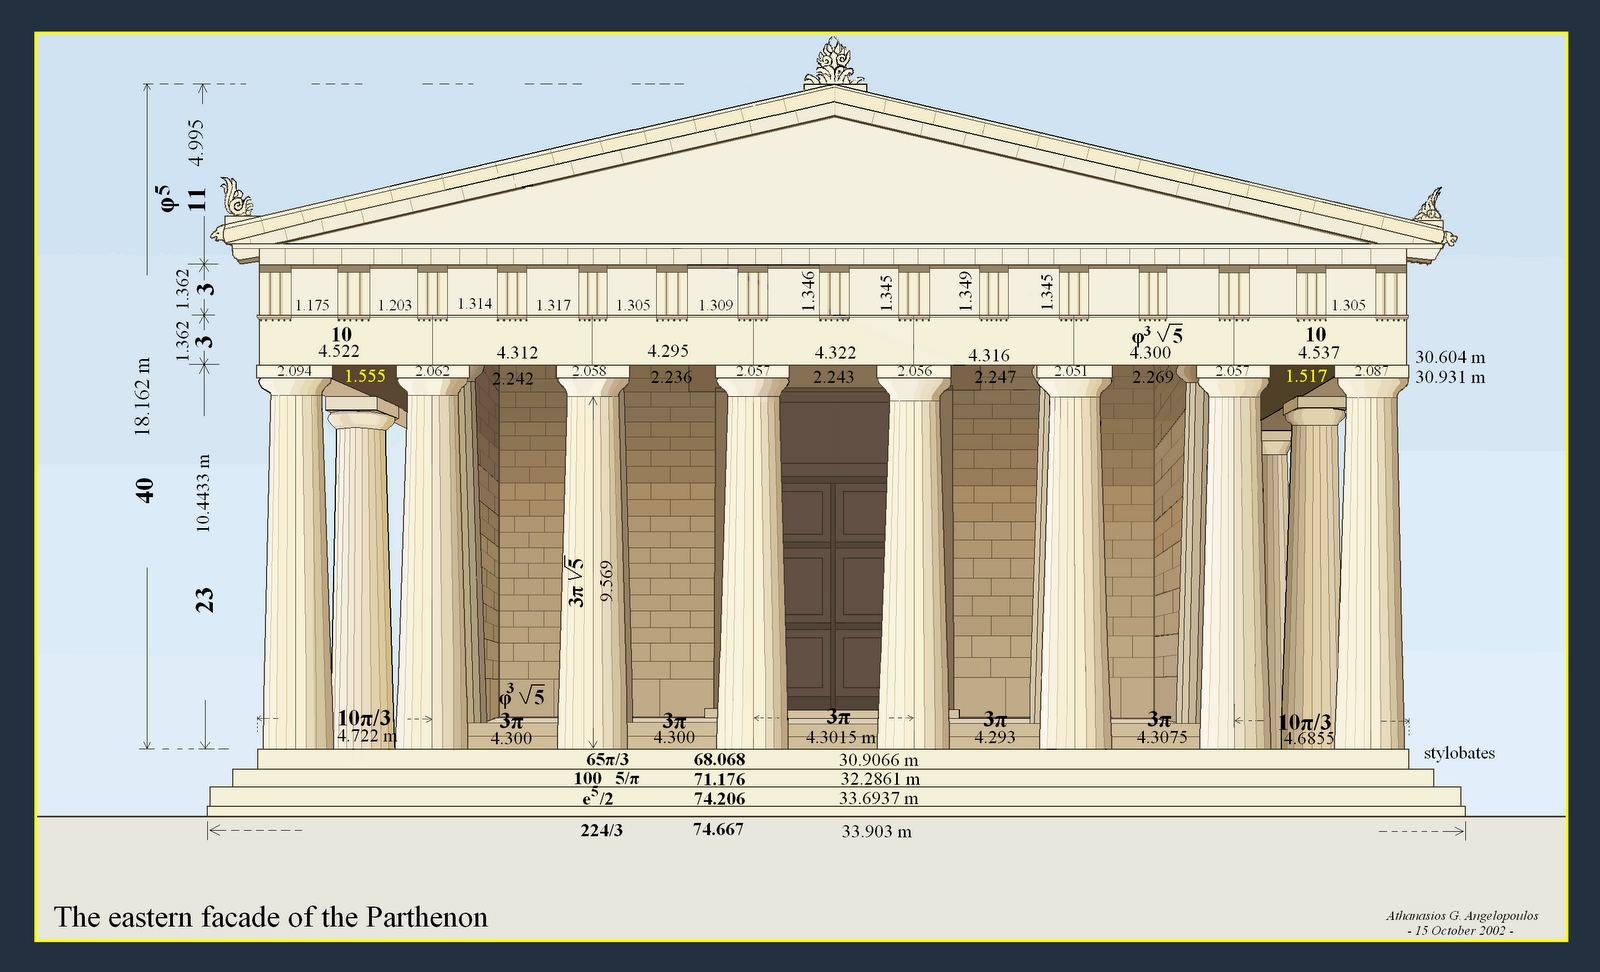 the parthenon nashville s classic architecture Here's your nashville check-list made in tennessee this is the world's only full-size replica of the ancient greek temple it houses the tallest indoor sculpture in the western world, a statue of athena, ancient goddess of wisdom and learning, the deity for whom the original parthenon was erected.